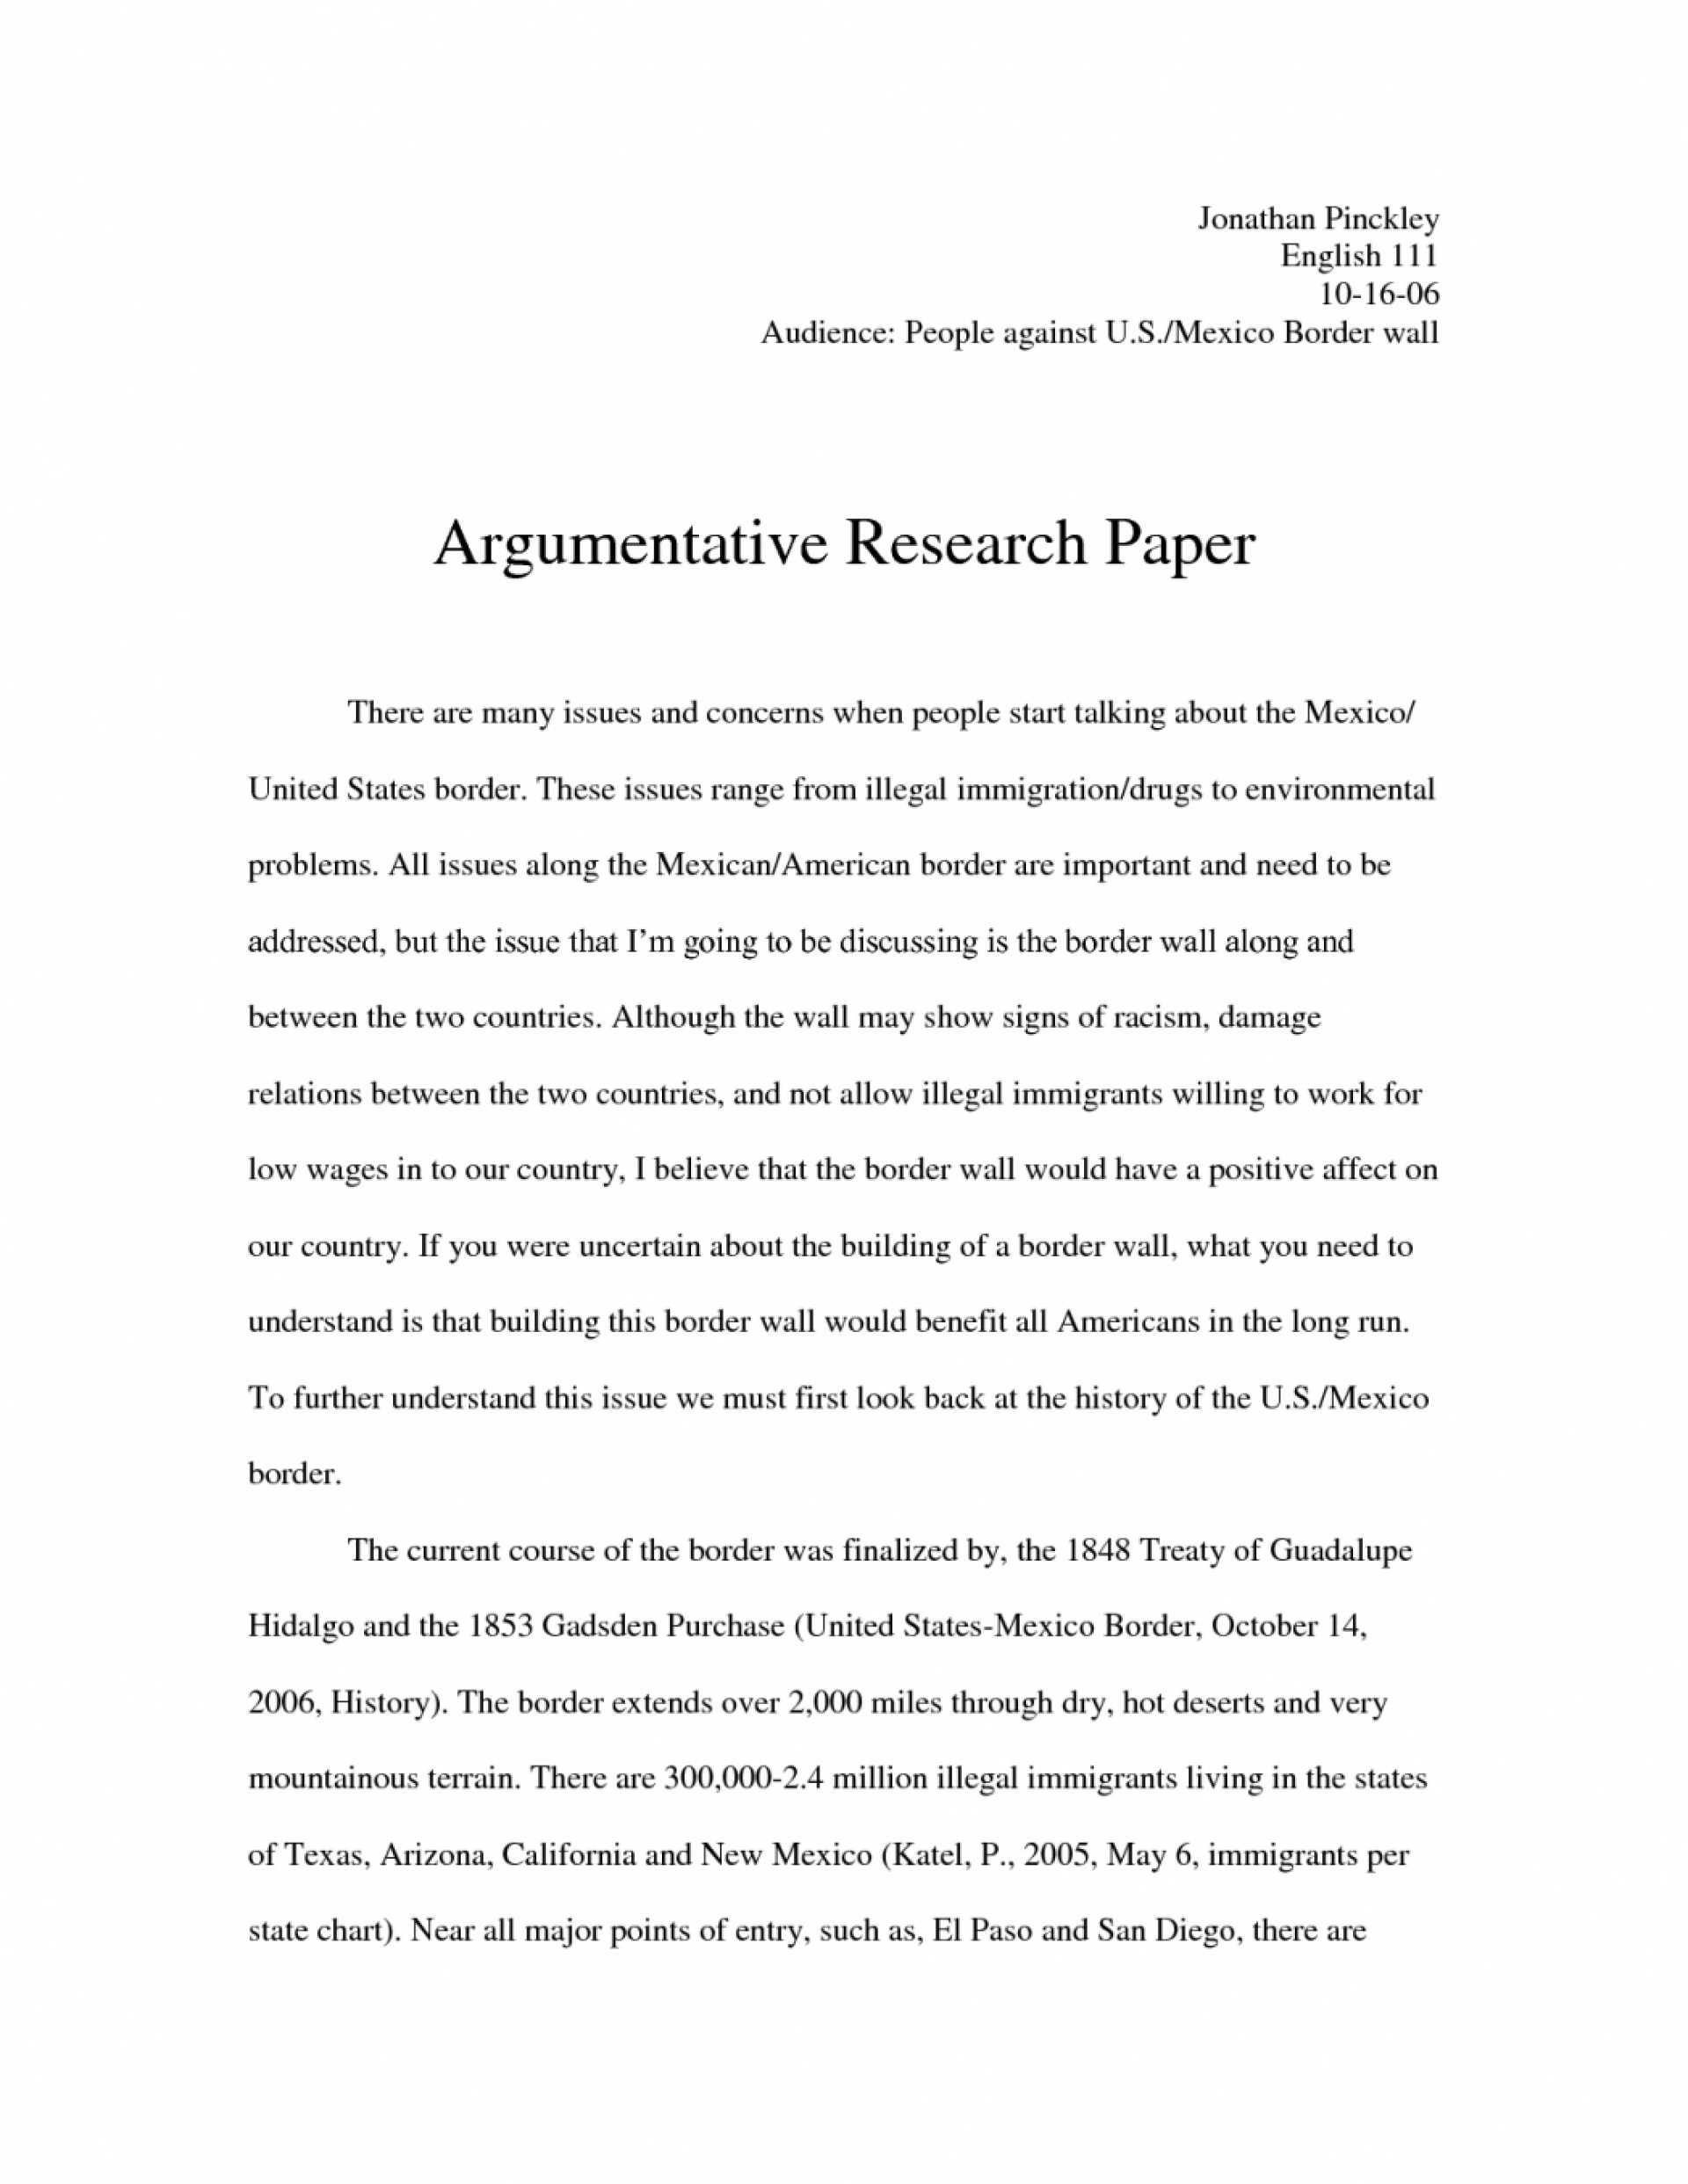 004 Argumentative Essay On Illegal Immigration Argument Research Persuasive Why Is Good Pgune Reform In America Topics Control Pro Thesis Rights 1048x1356 Exceptional Conclusion 1920